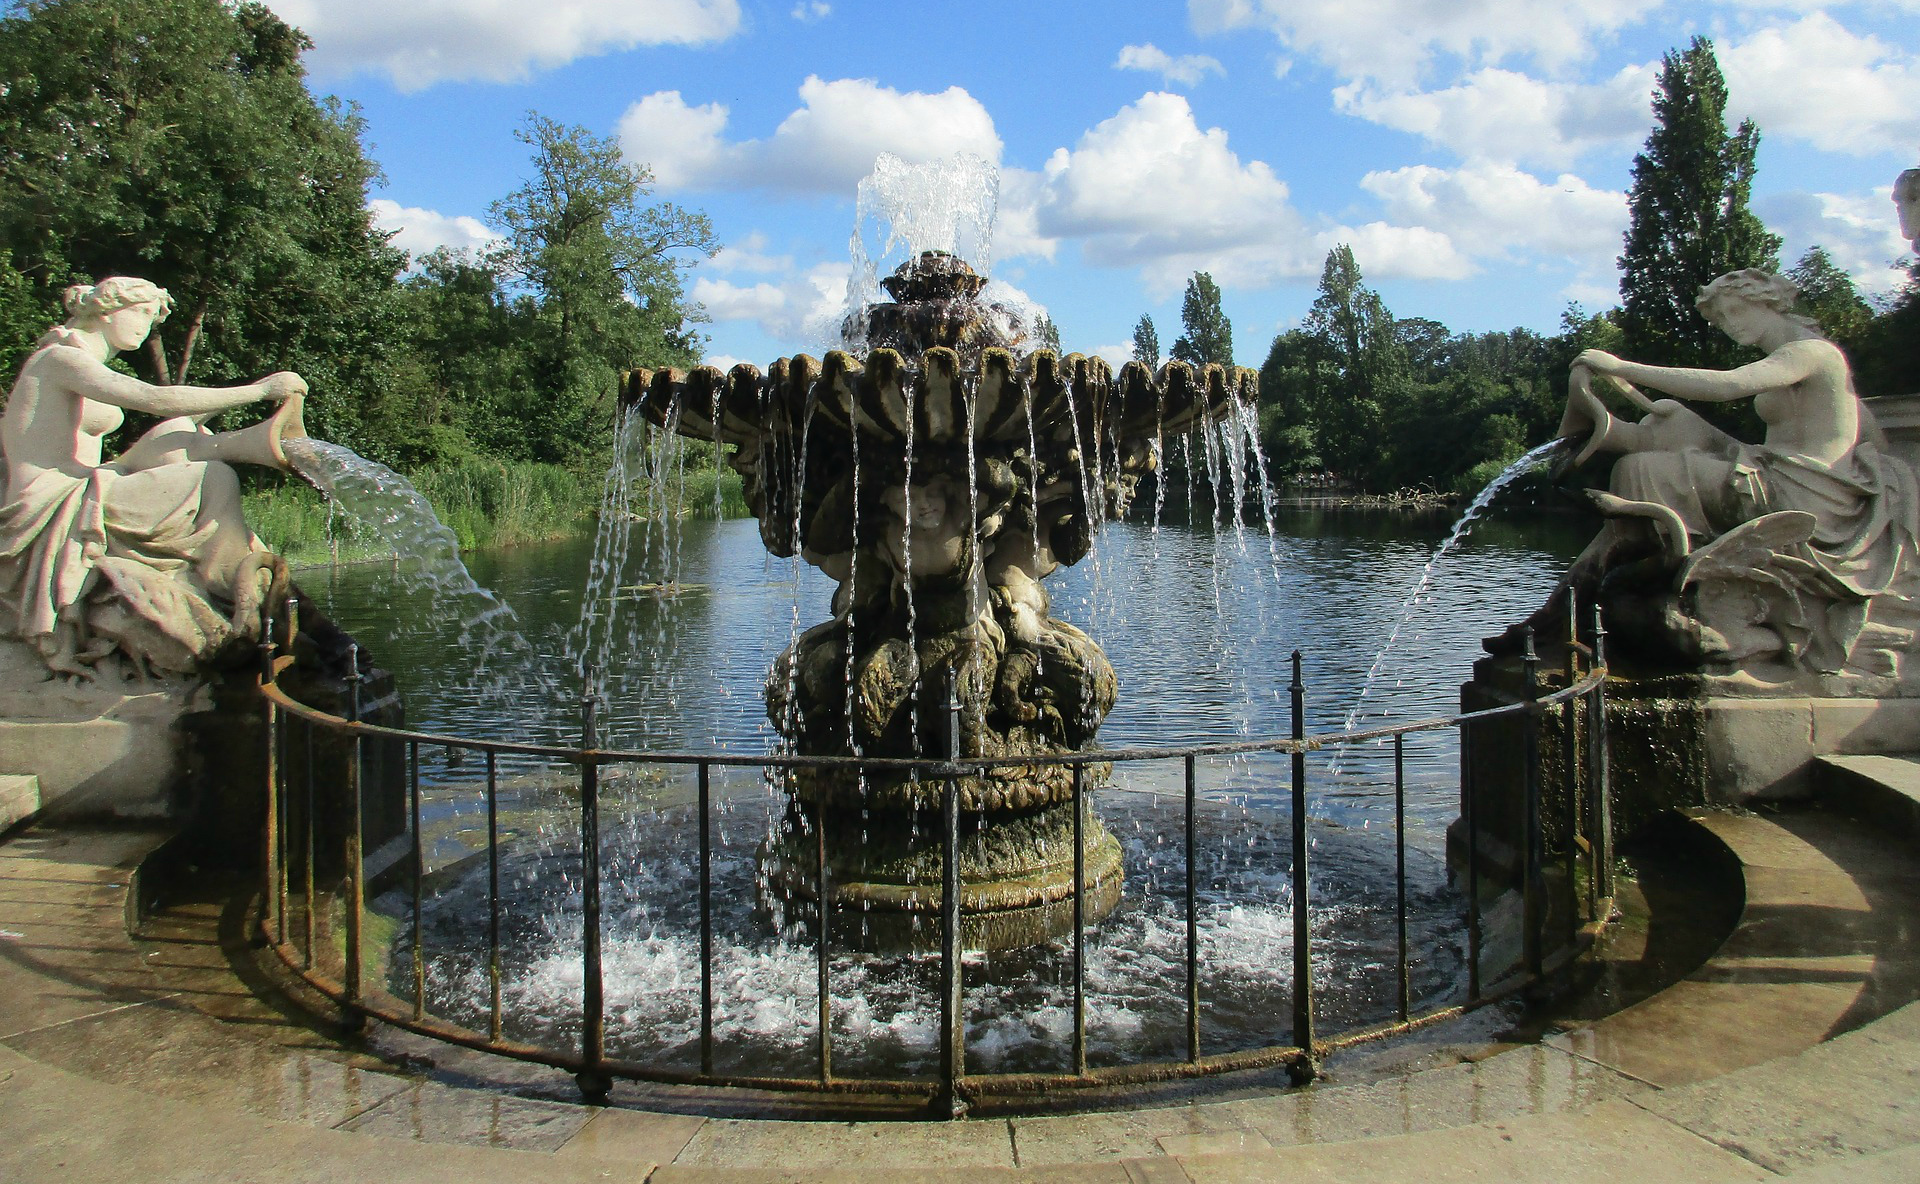 Hyde Park London - The Best Free Things to Do in London - Free Museums, Free Entertainment and Free Tourist Attractions in London